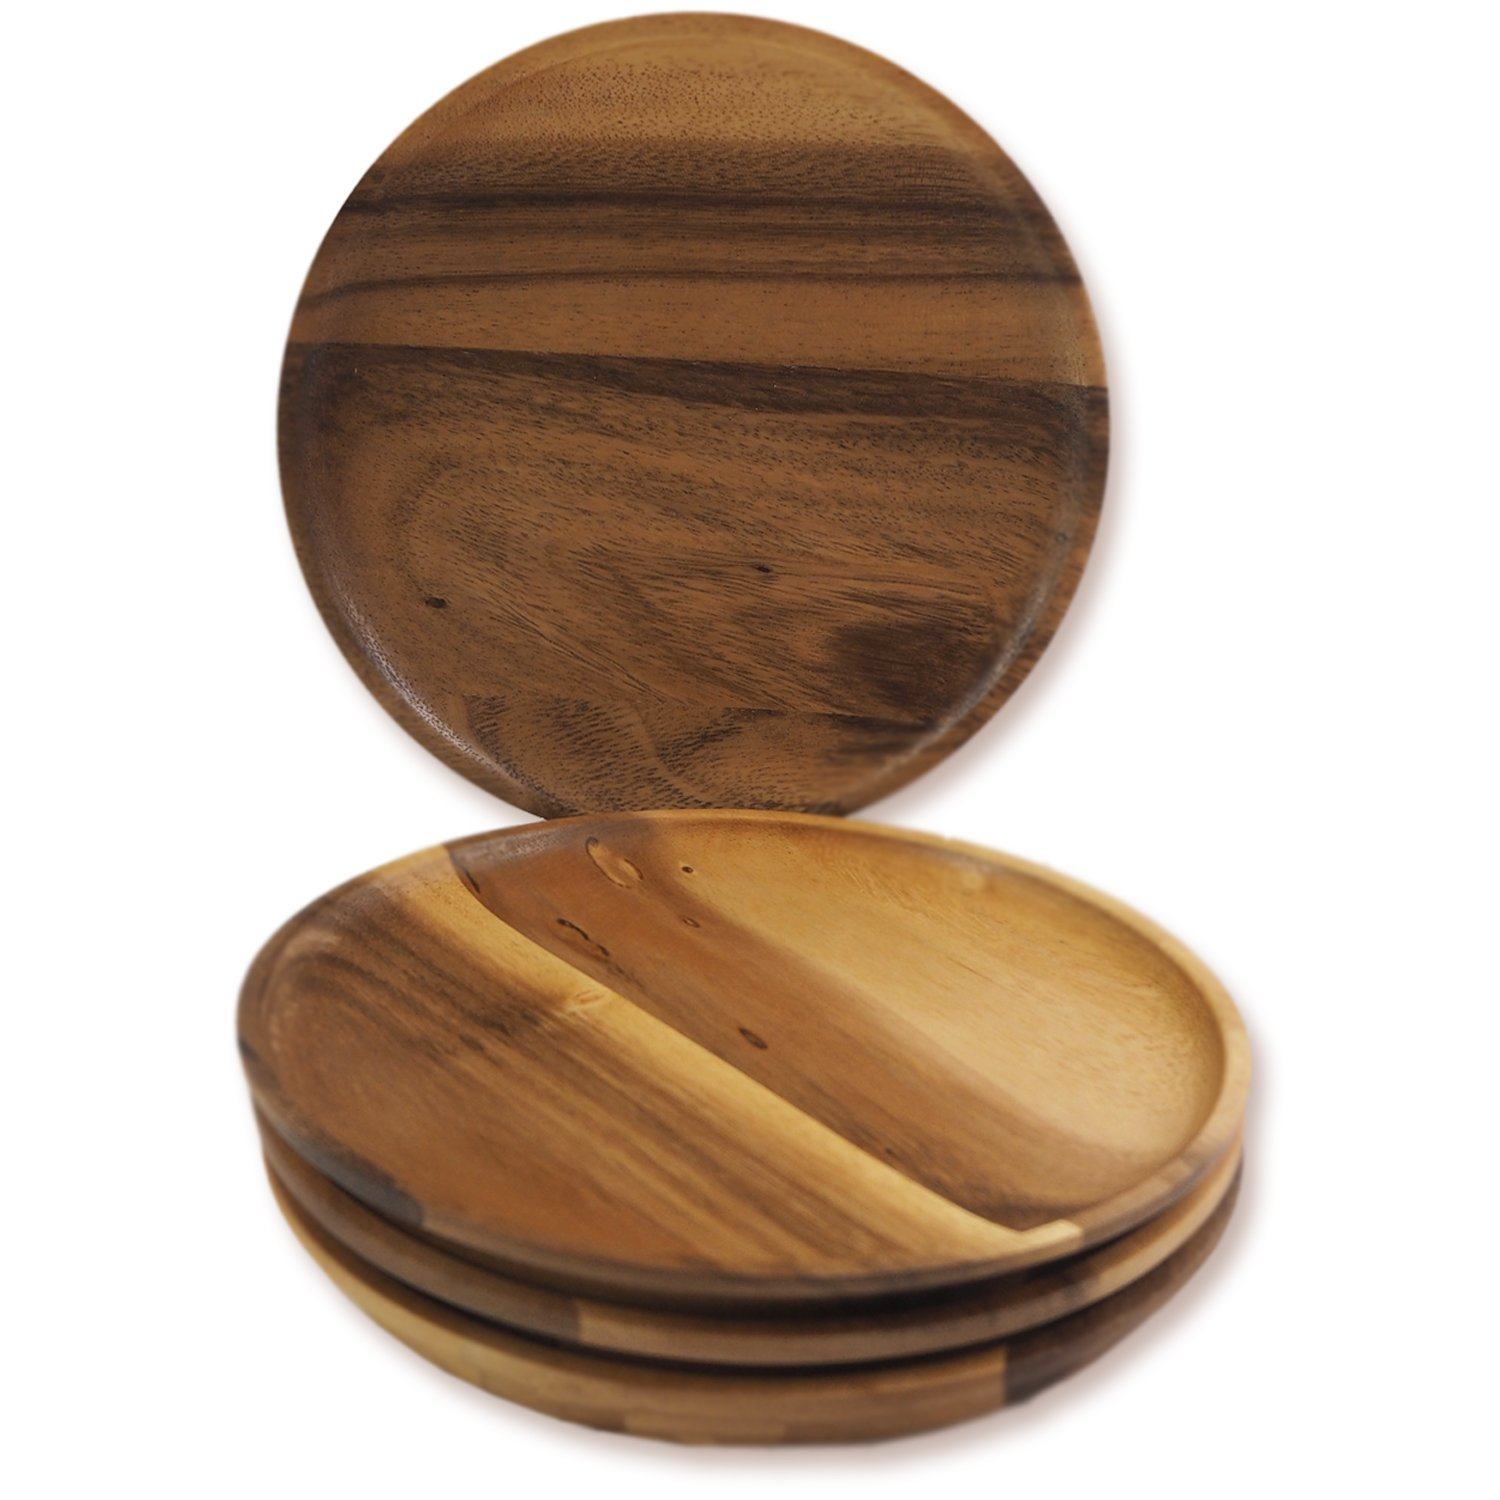 RoRo Round Acacia Wood Serving/Charger Plates, 7 Inch Set of 4